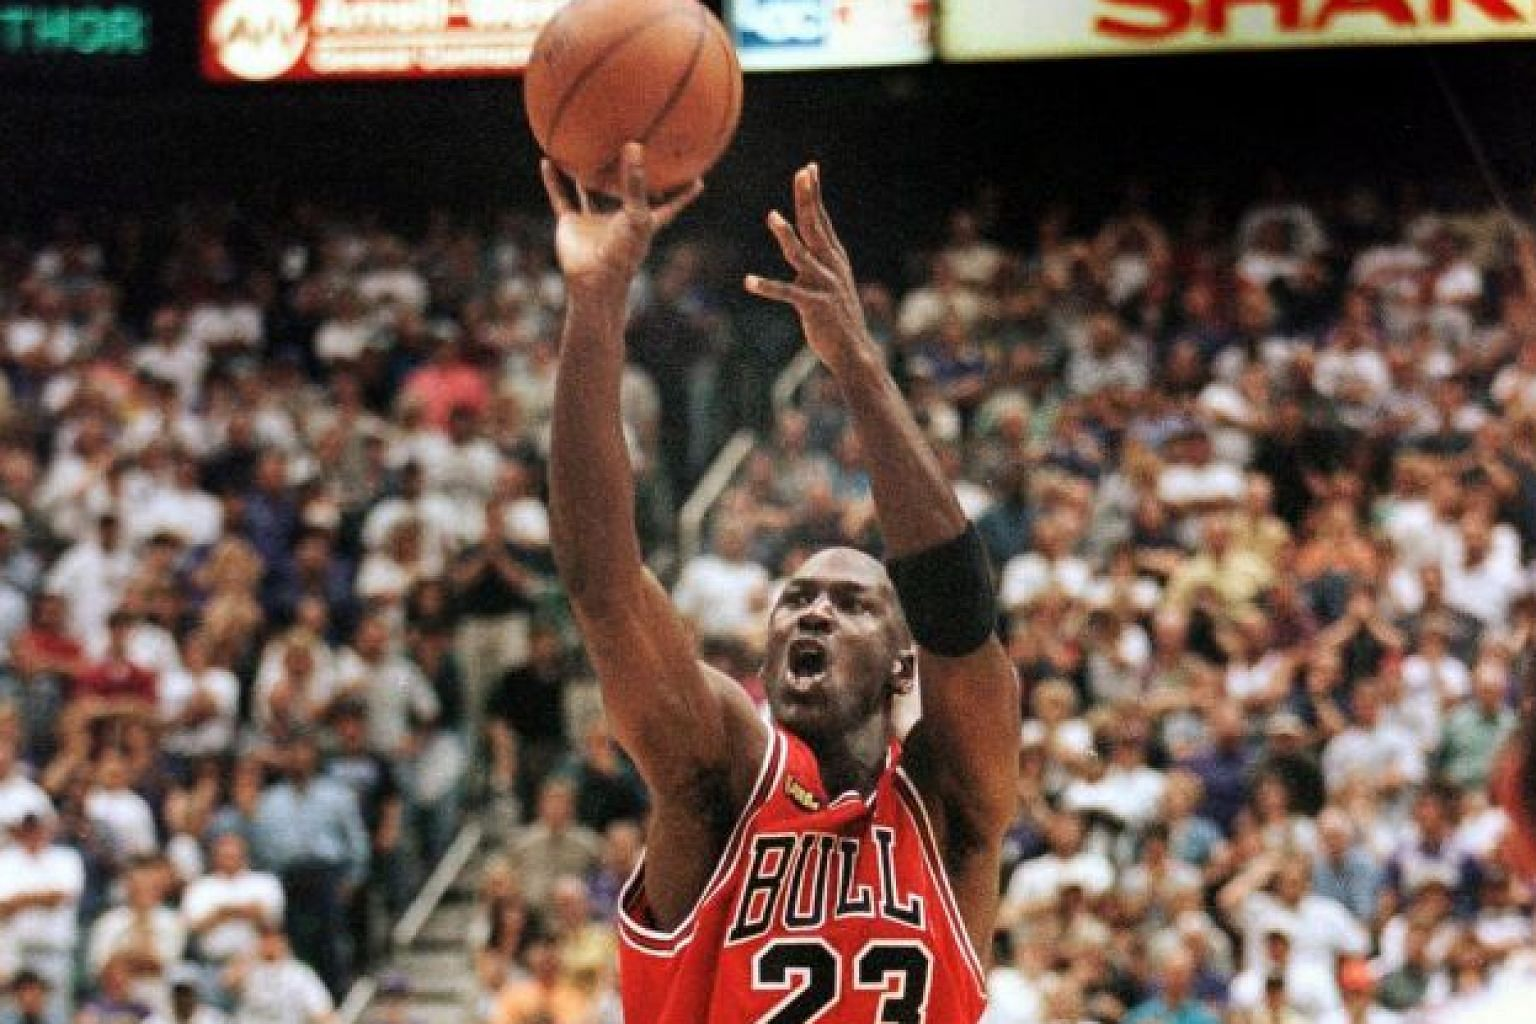 With 5.2 seconds left, Michael Jordan aims and takes the Game Six-winning jump shot in the 1998 NBA Finals against the Utah Jazz in Salt Lake City. The Chicago Bulls won 87-86 to clinch the series for their sixth title and second hat-trick.